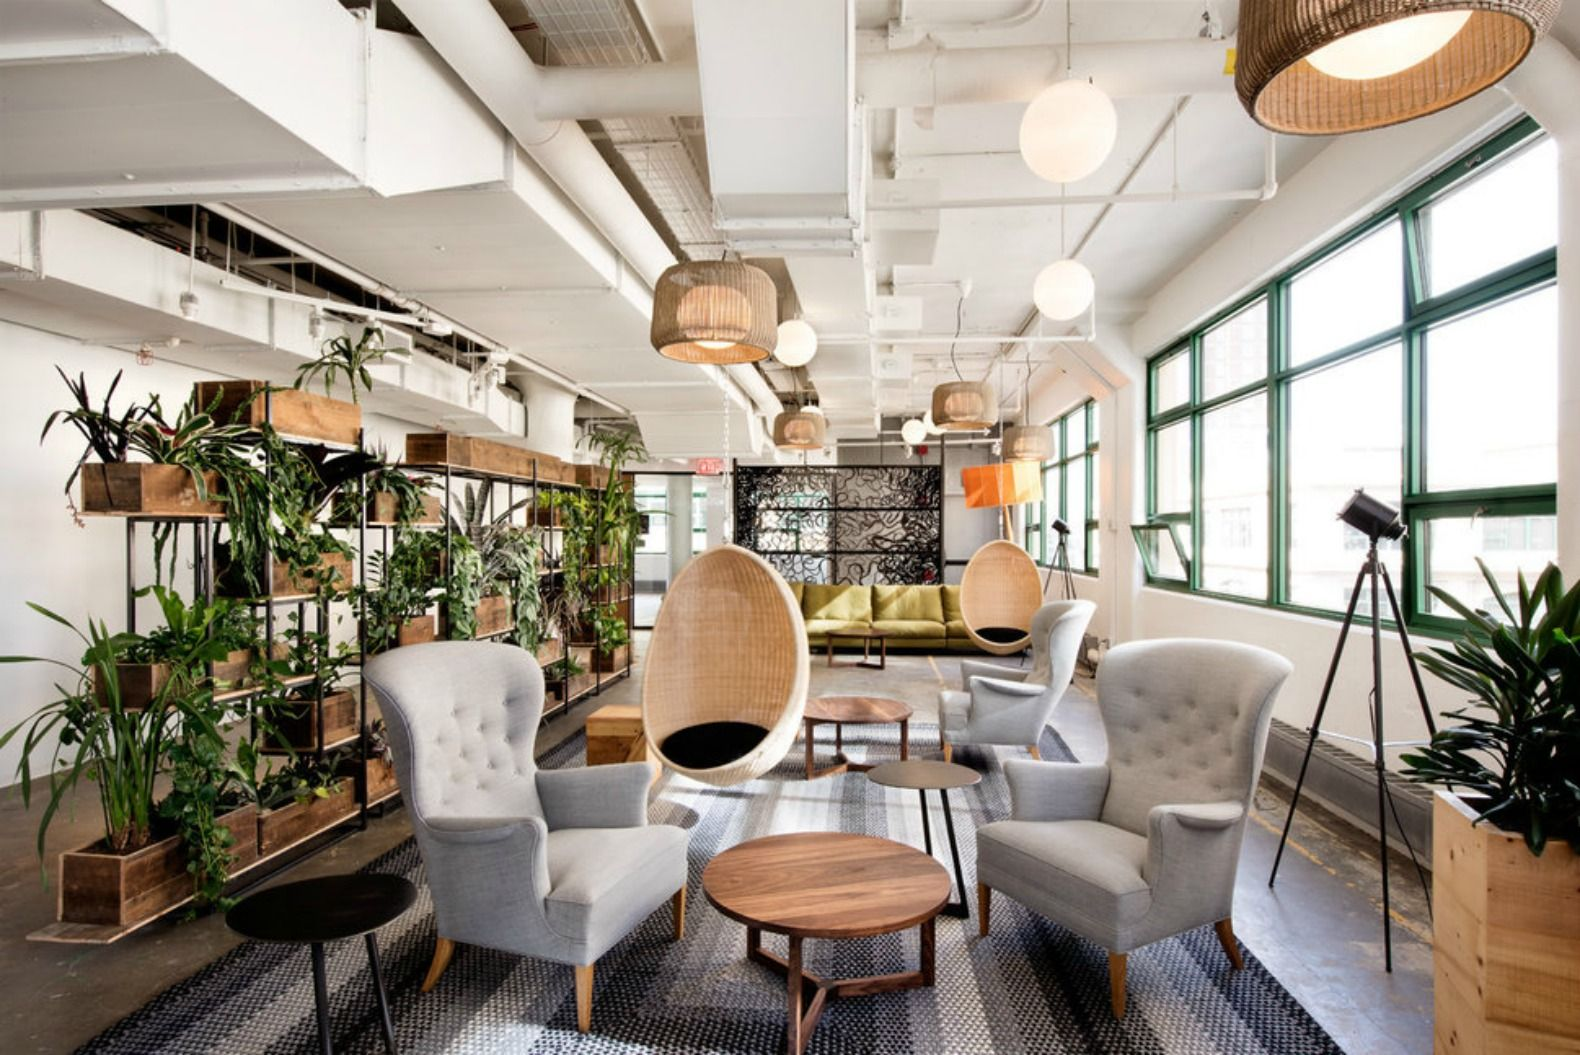 Etsy's new Brooklyn headquarters is one of the greenest spaces in Brooklyn | Inhabitat New York City